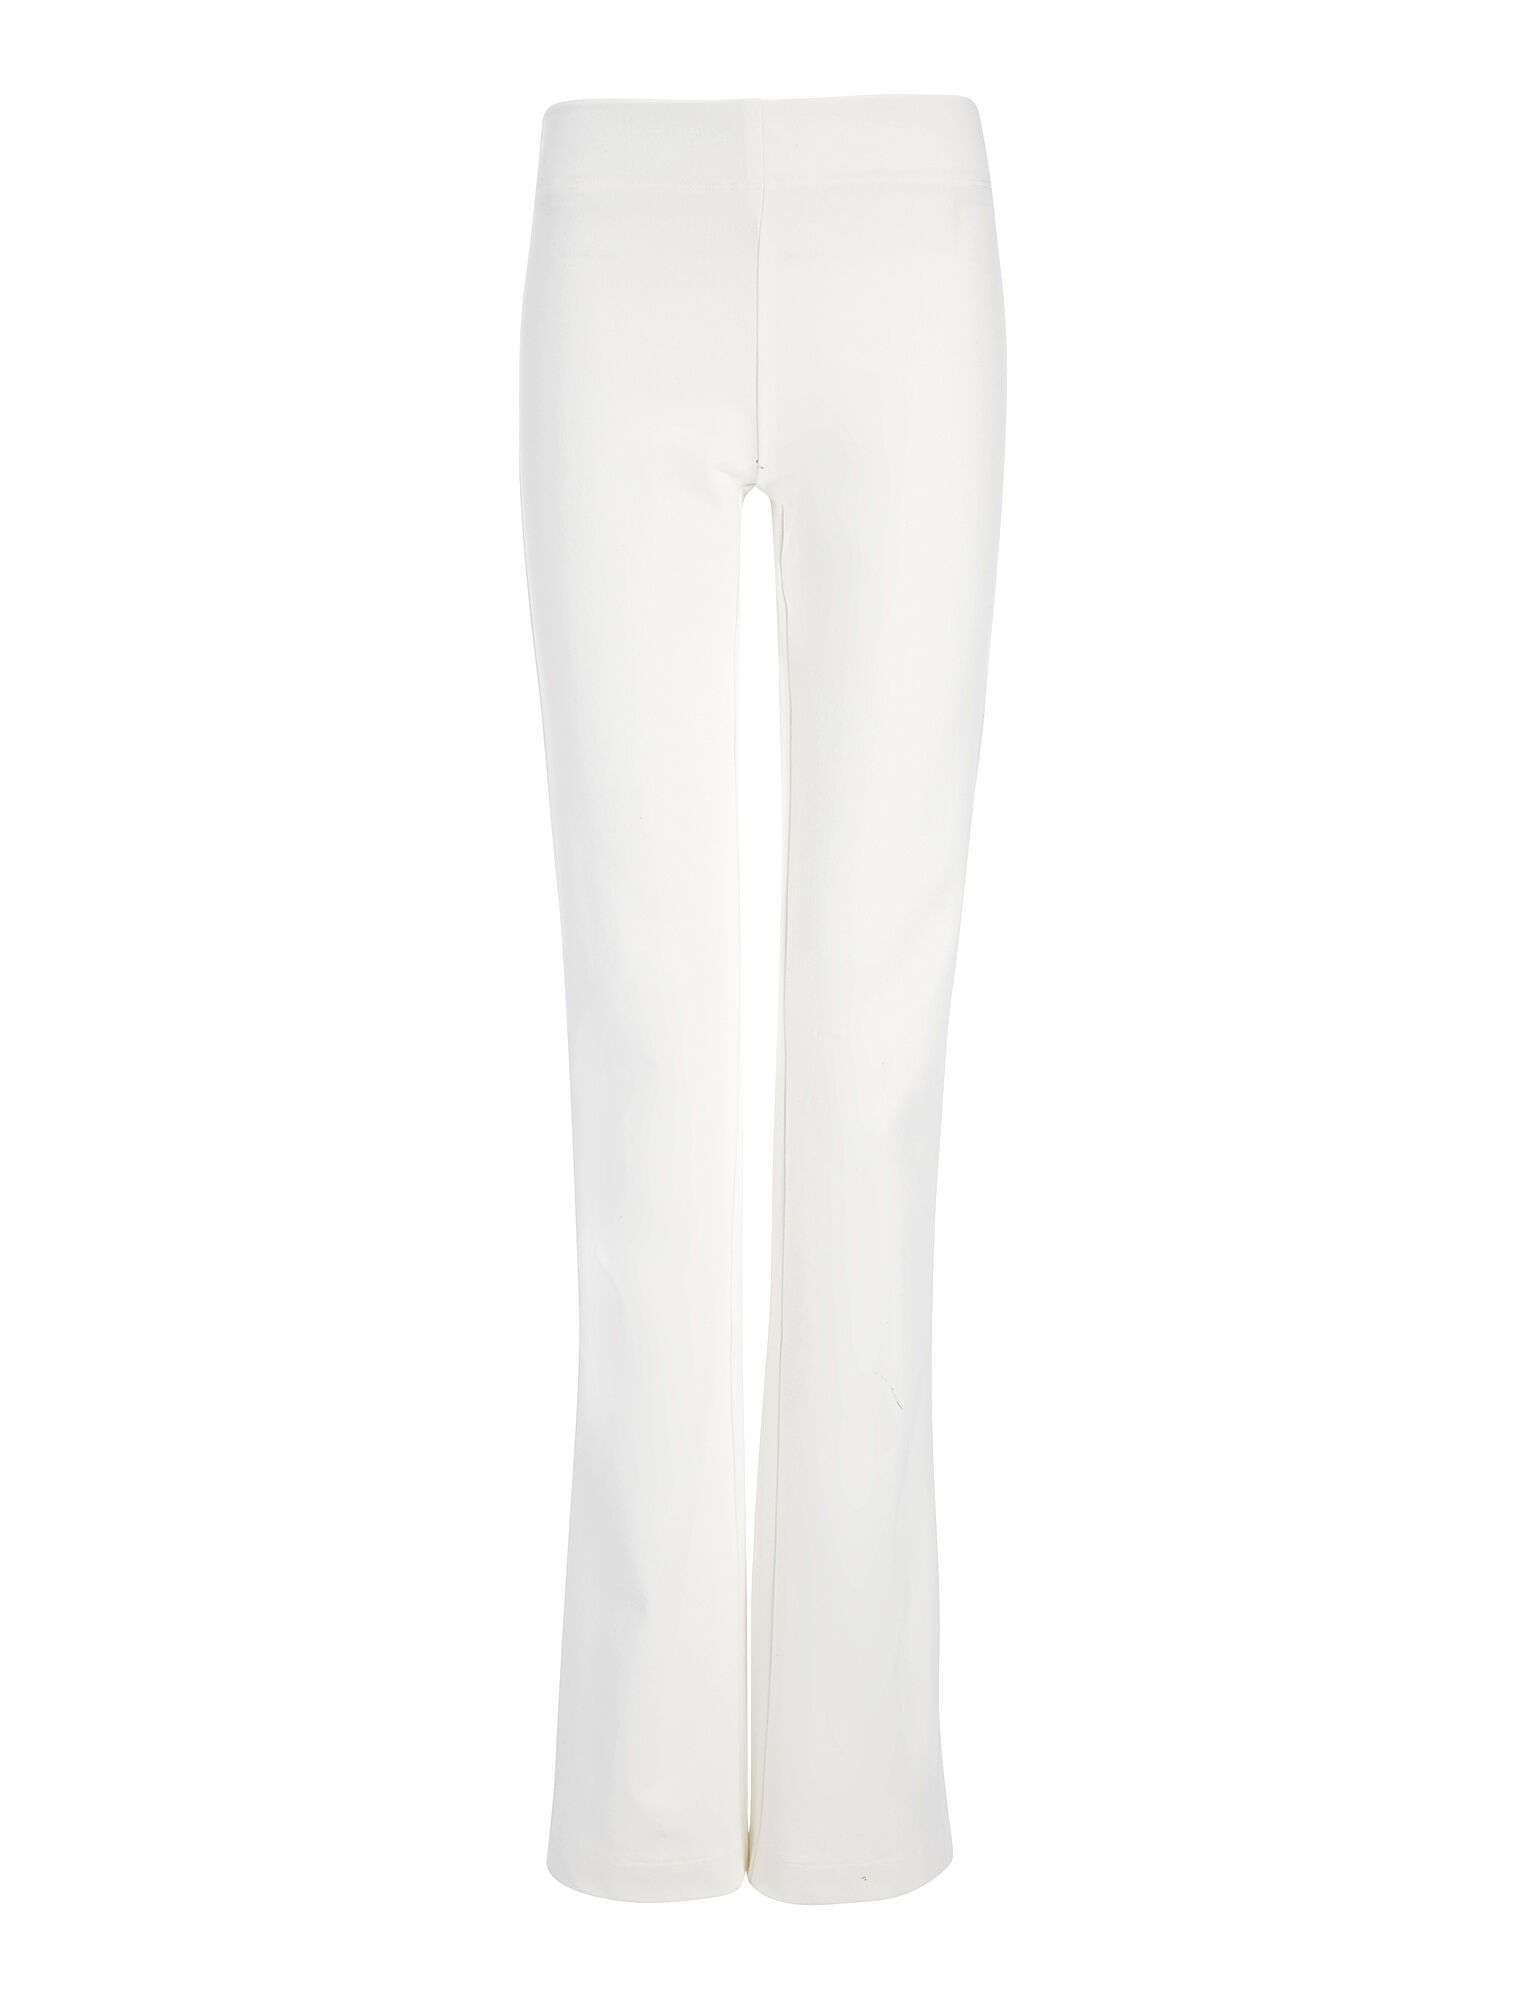 Joseph, Gabardine Stretch Lex Trouser, in OFF WHITE